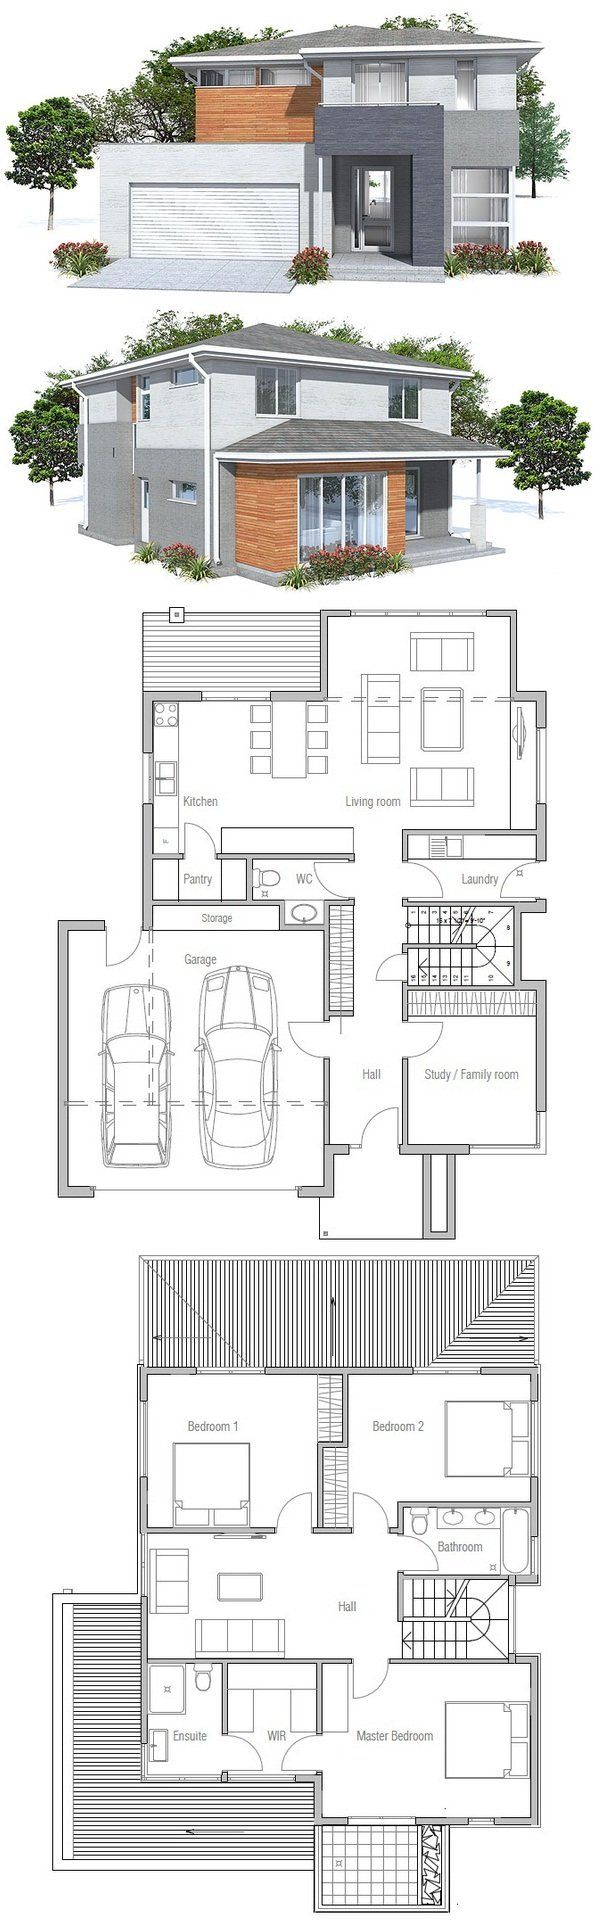 Best Modern House Plans Ideas On Pinterest Modern House